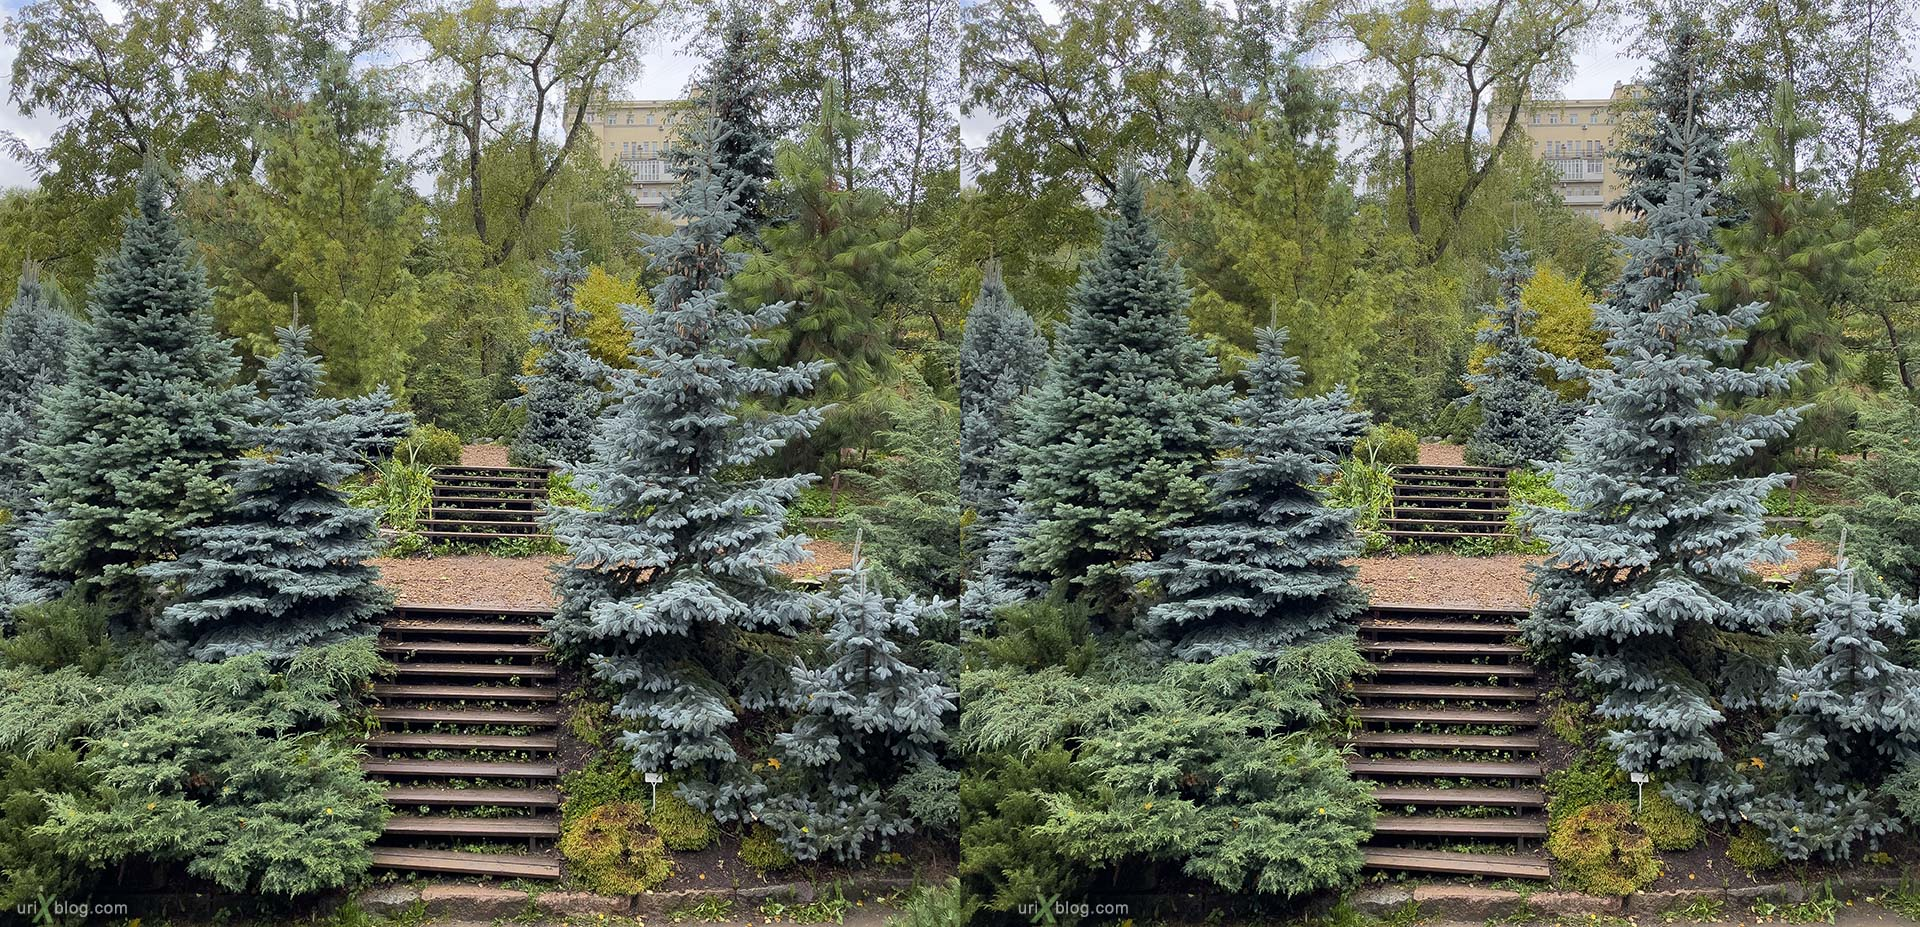 hill, Pharmaceutical Garden, Russia, Moscow, 3D, stereo pair, cross-eyed, crossview, cross view stereo pair, stereoscopic